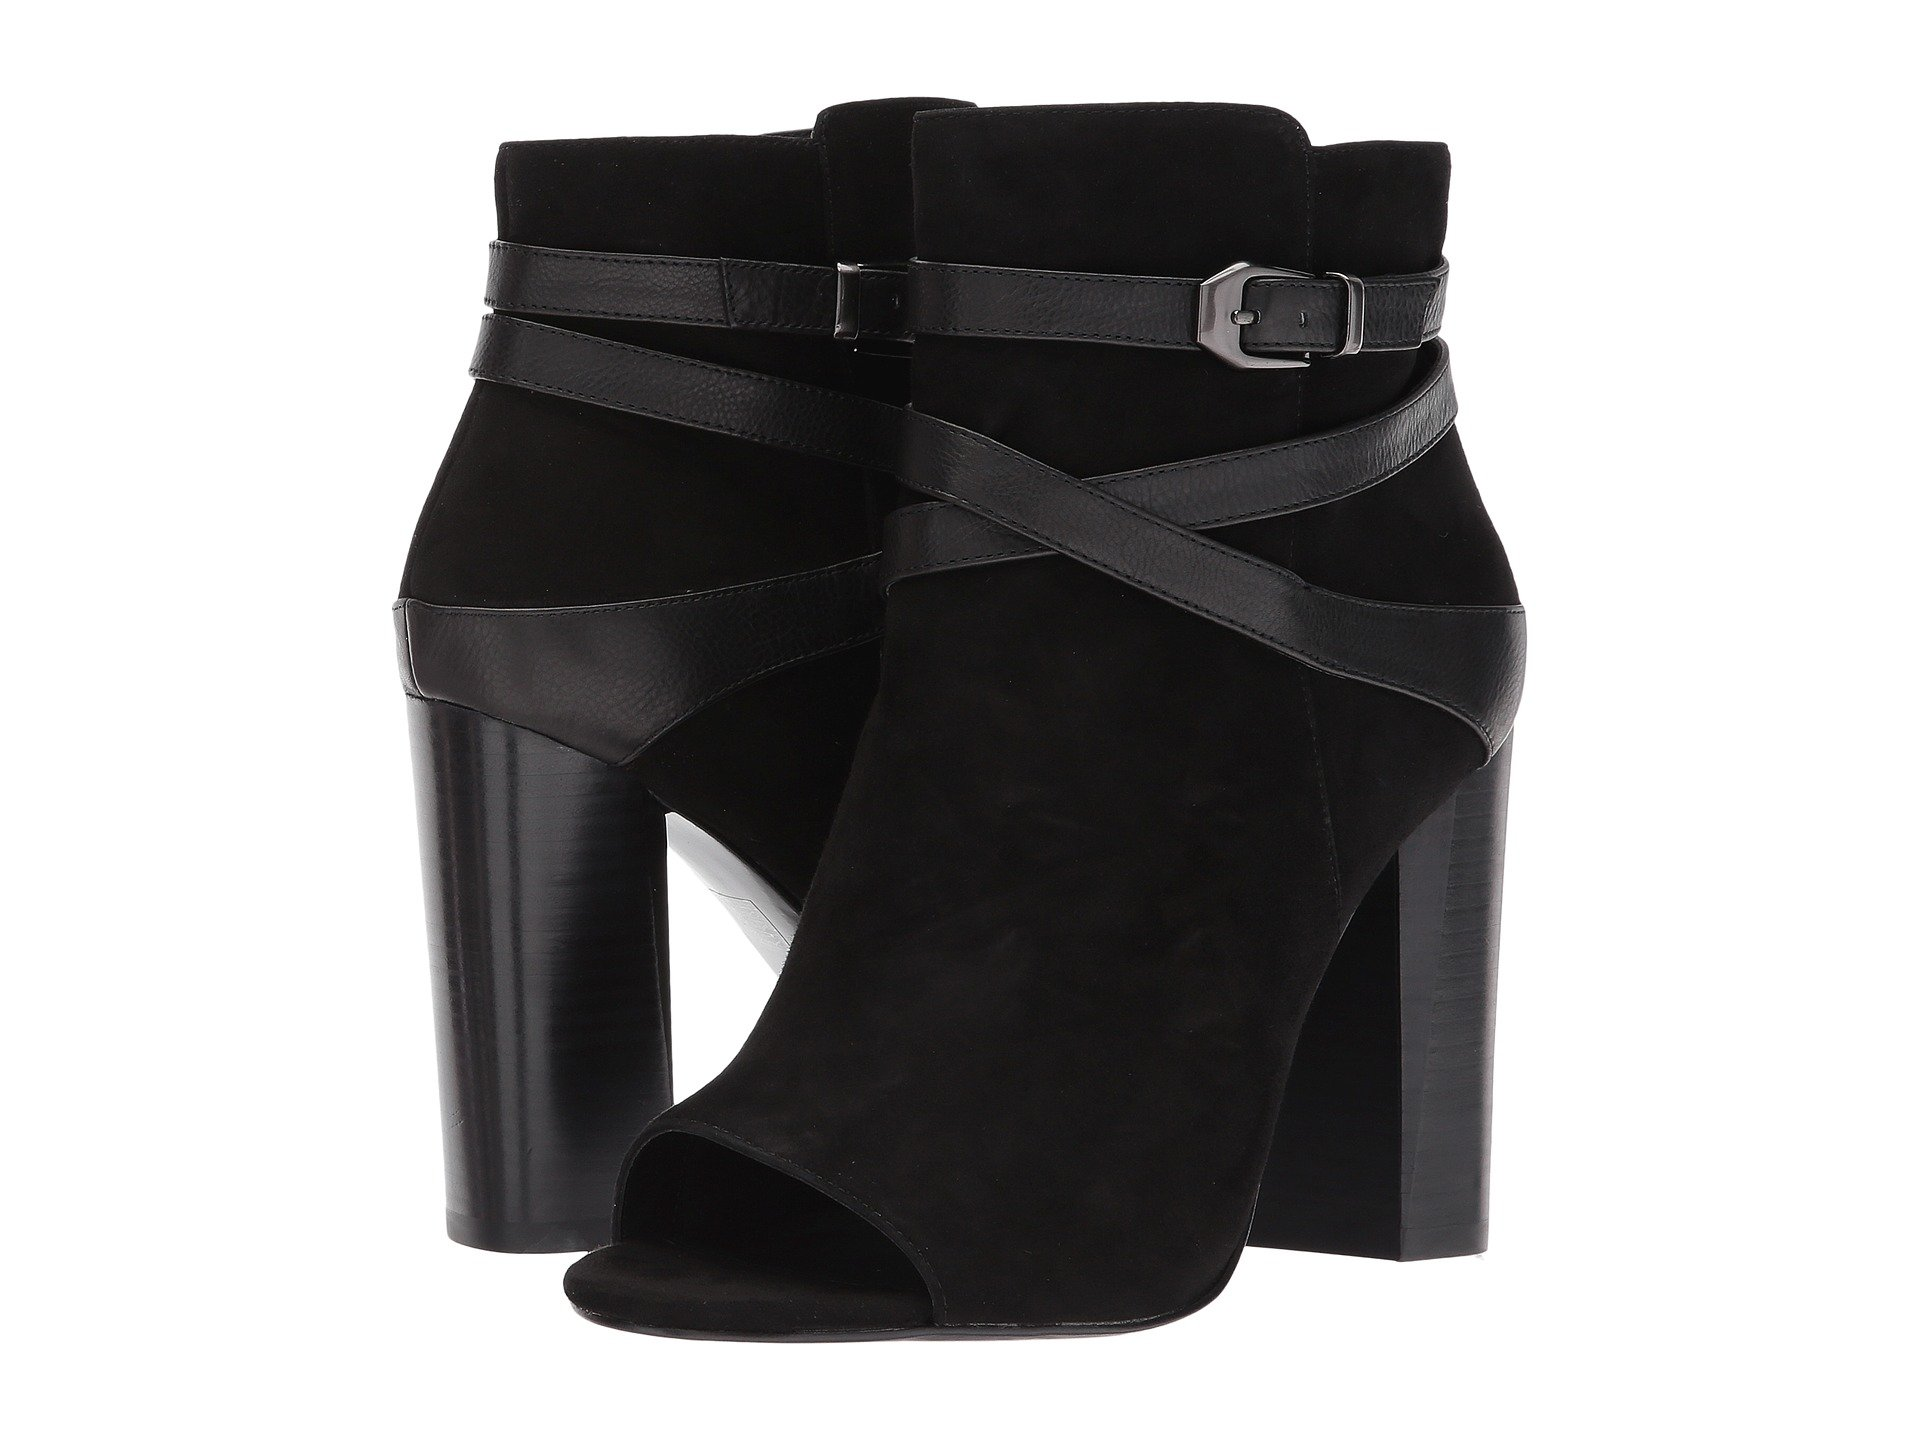 PELLE MODA Adrina Open-Toe High-Heel Nubuck Booties in Black Suede